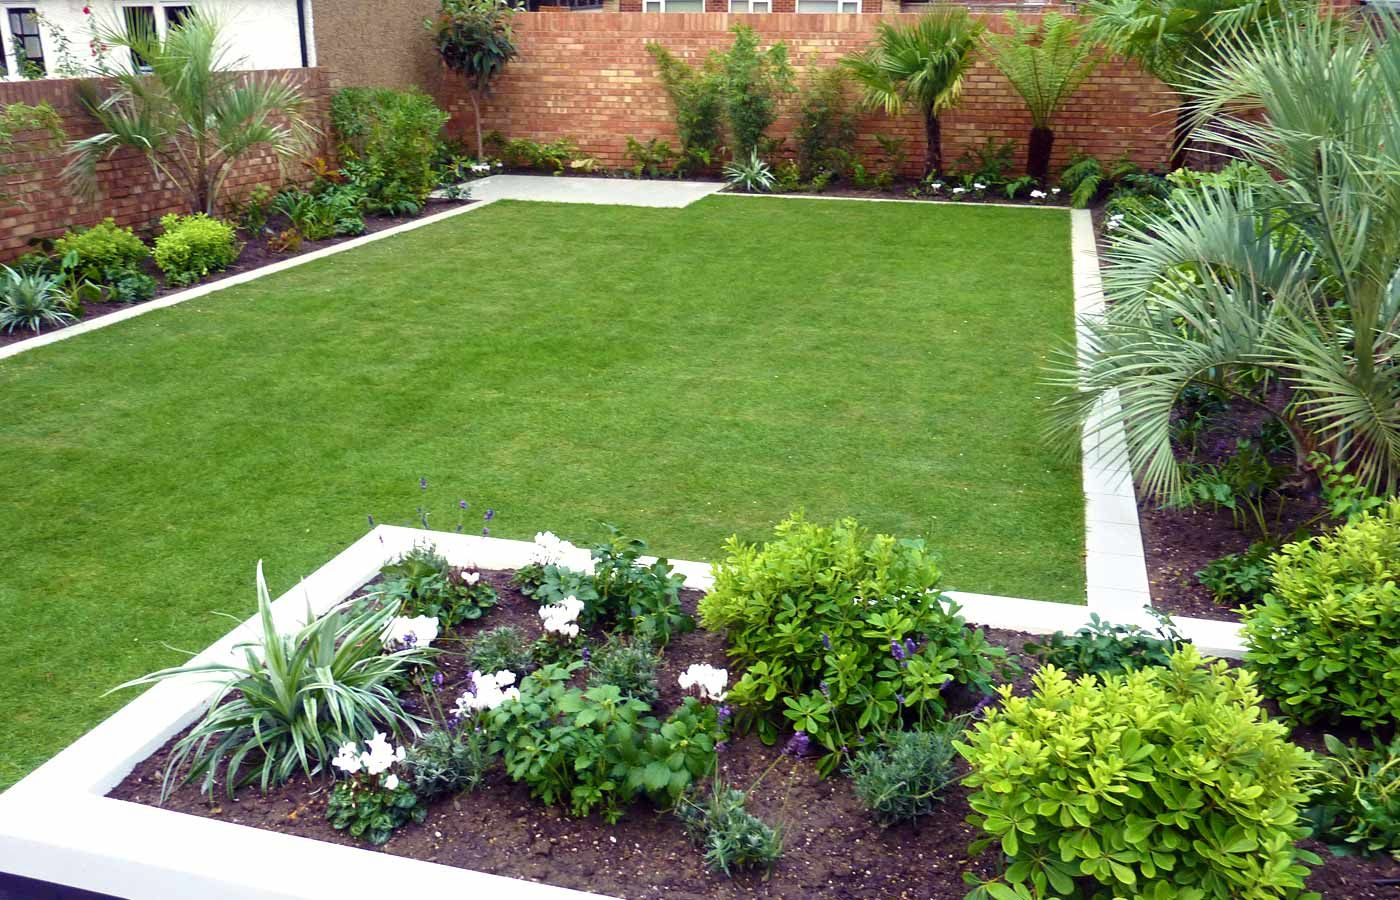 Top 10 Gorgeous Garden Ideas Most Beautiful Gardens Simple Garden Designs Garden Landscape Design Garden Layout